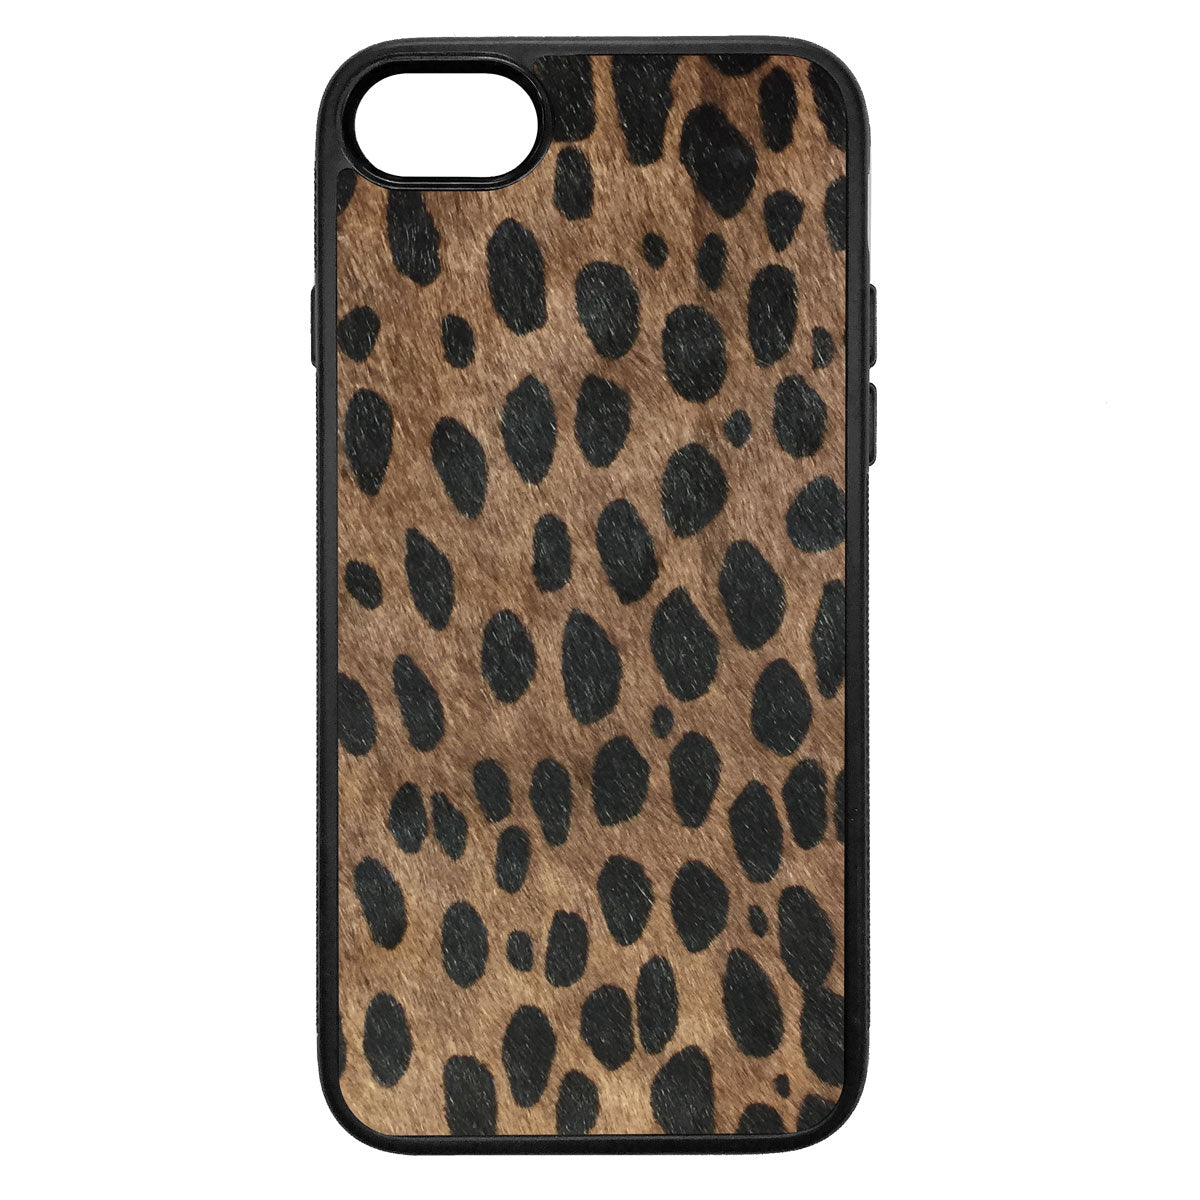 Brown Cheetah Pony Hair iPhone 7 Leather Case